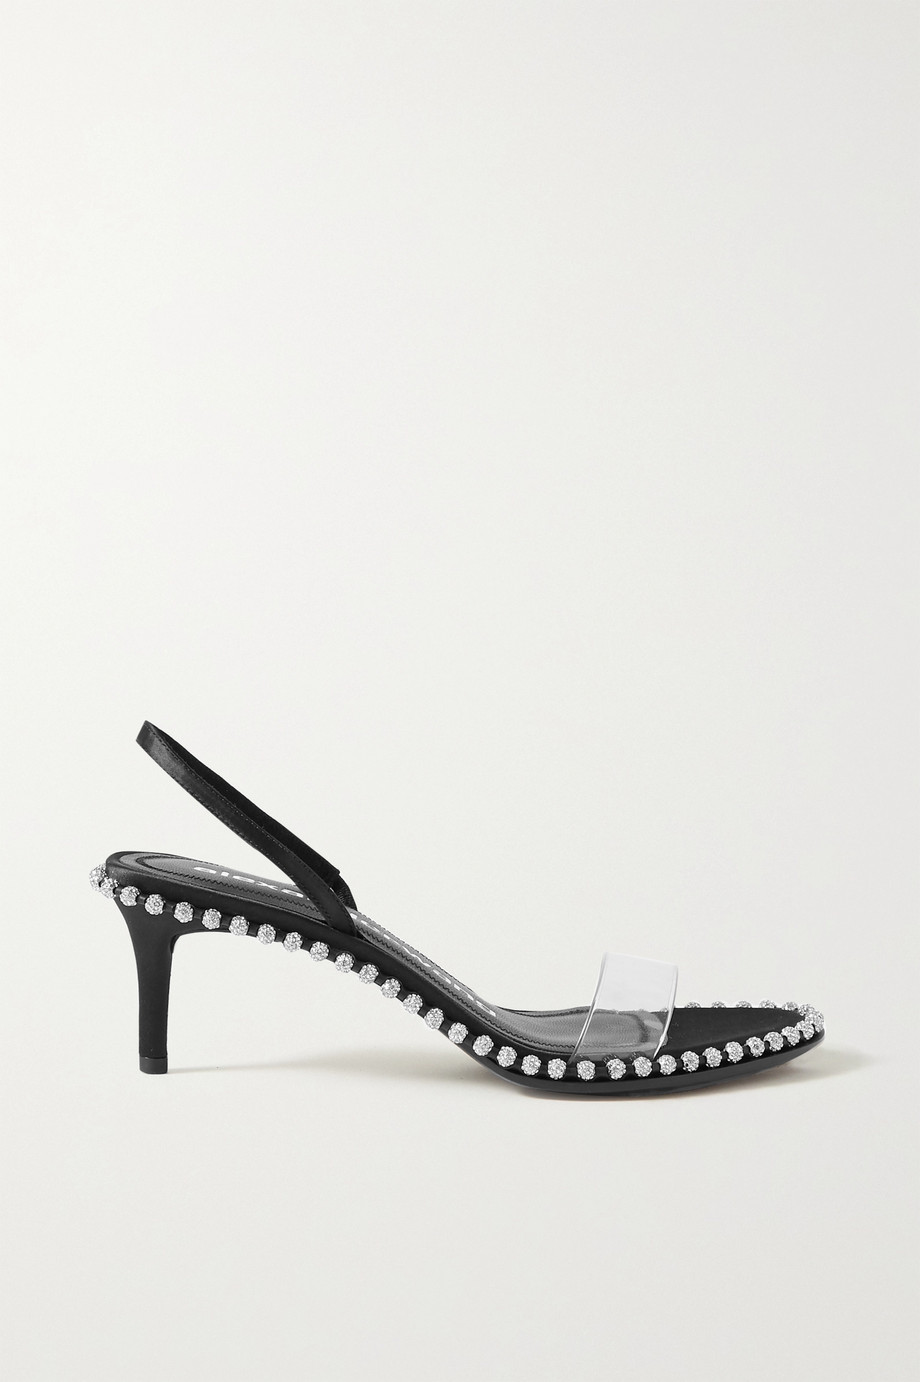 Alexander Wang Nova Low crystal-embellished satin and PVC slingback sandals